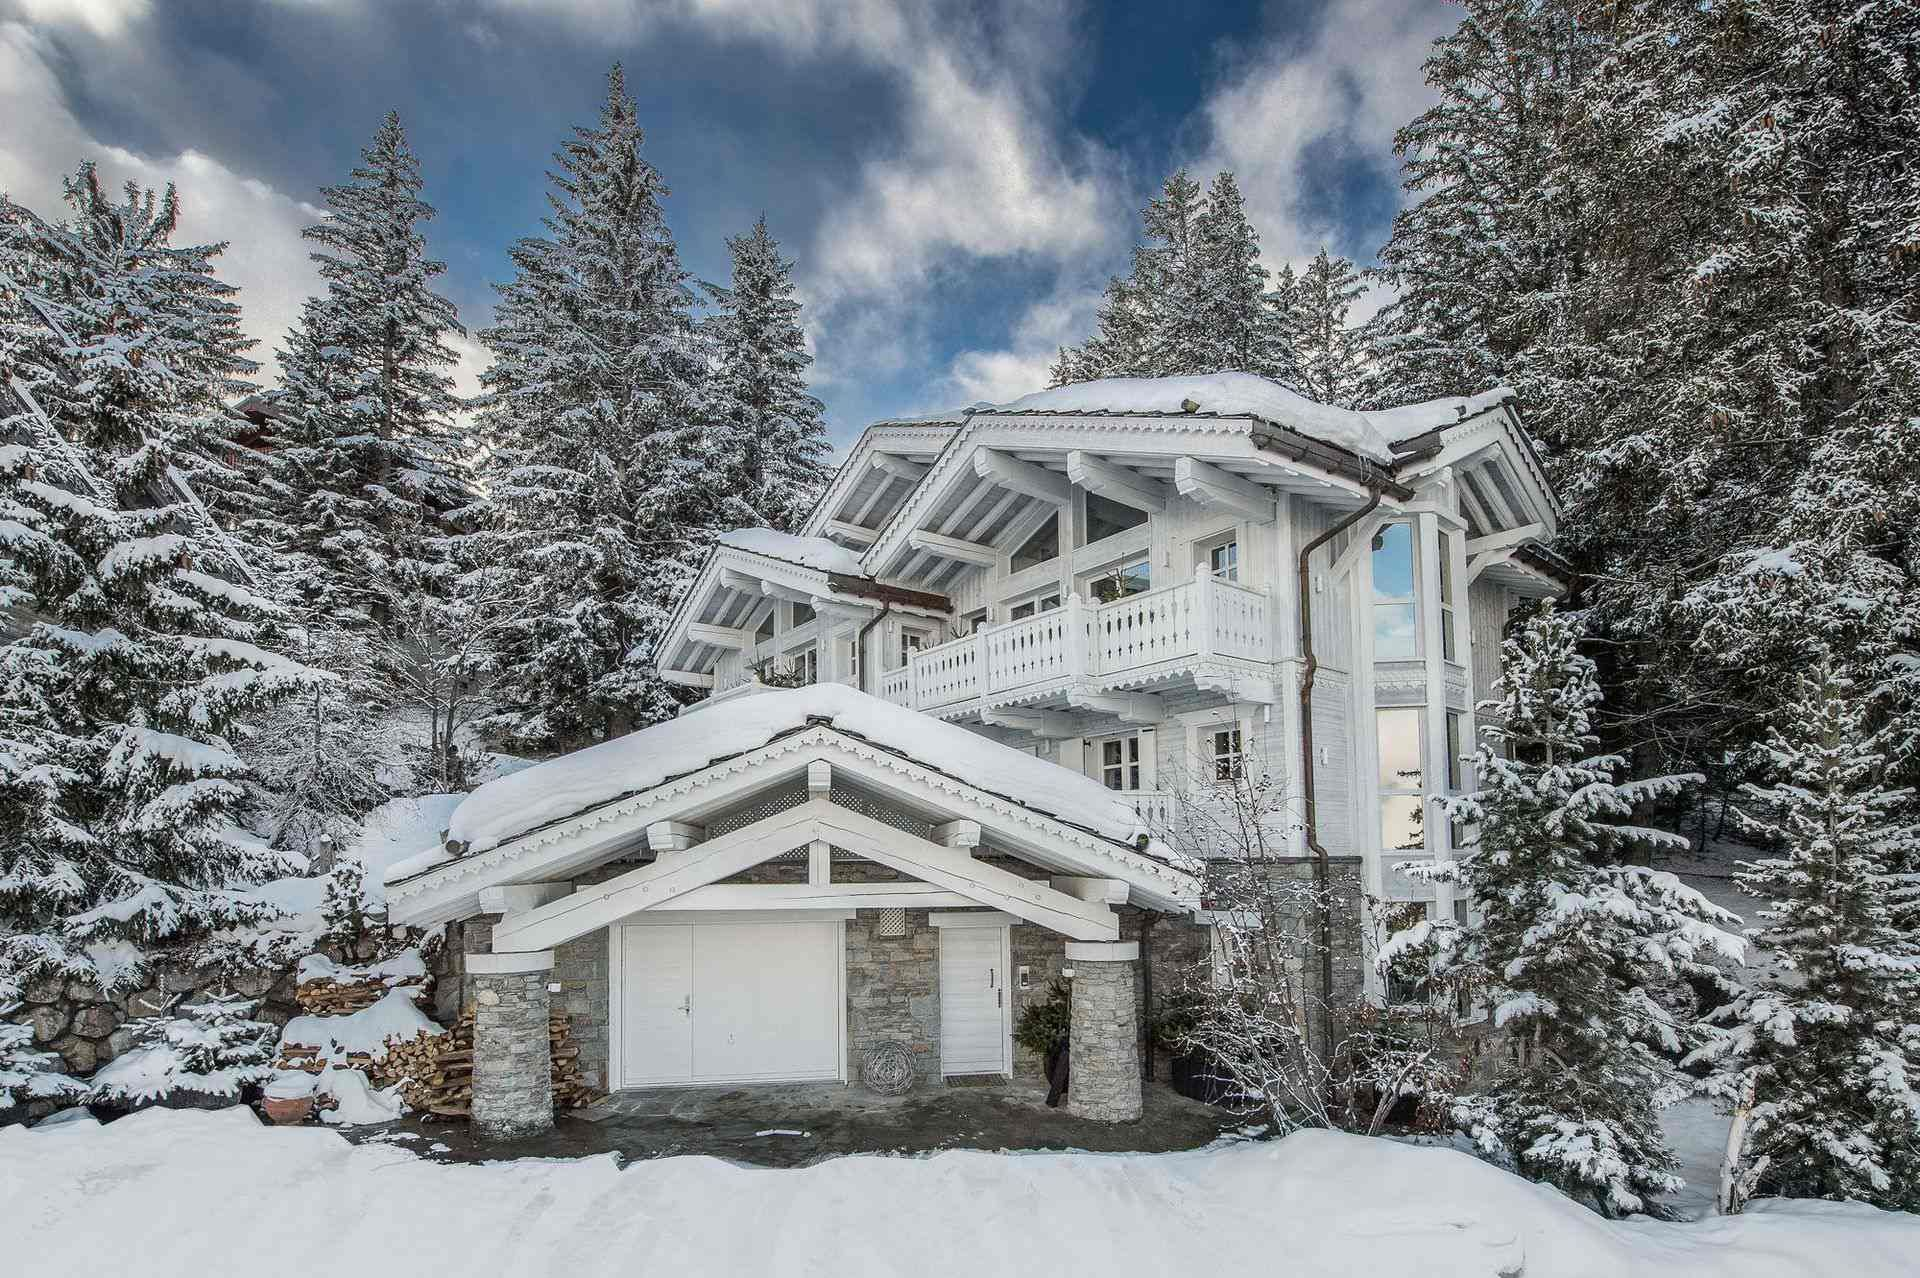 CHALET WHITE DREAM